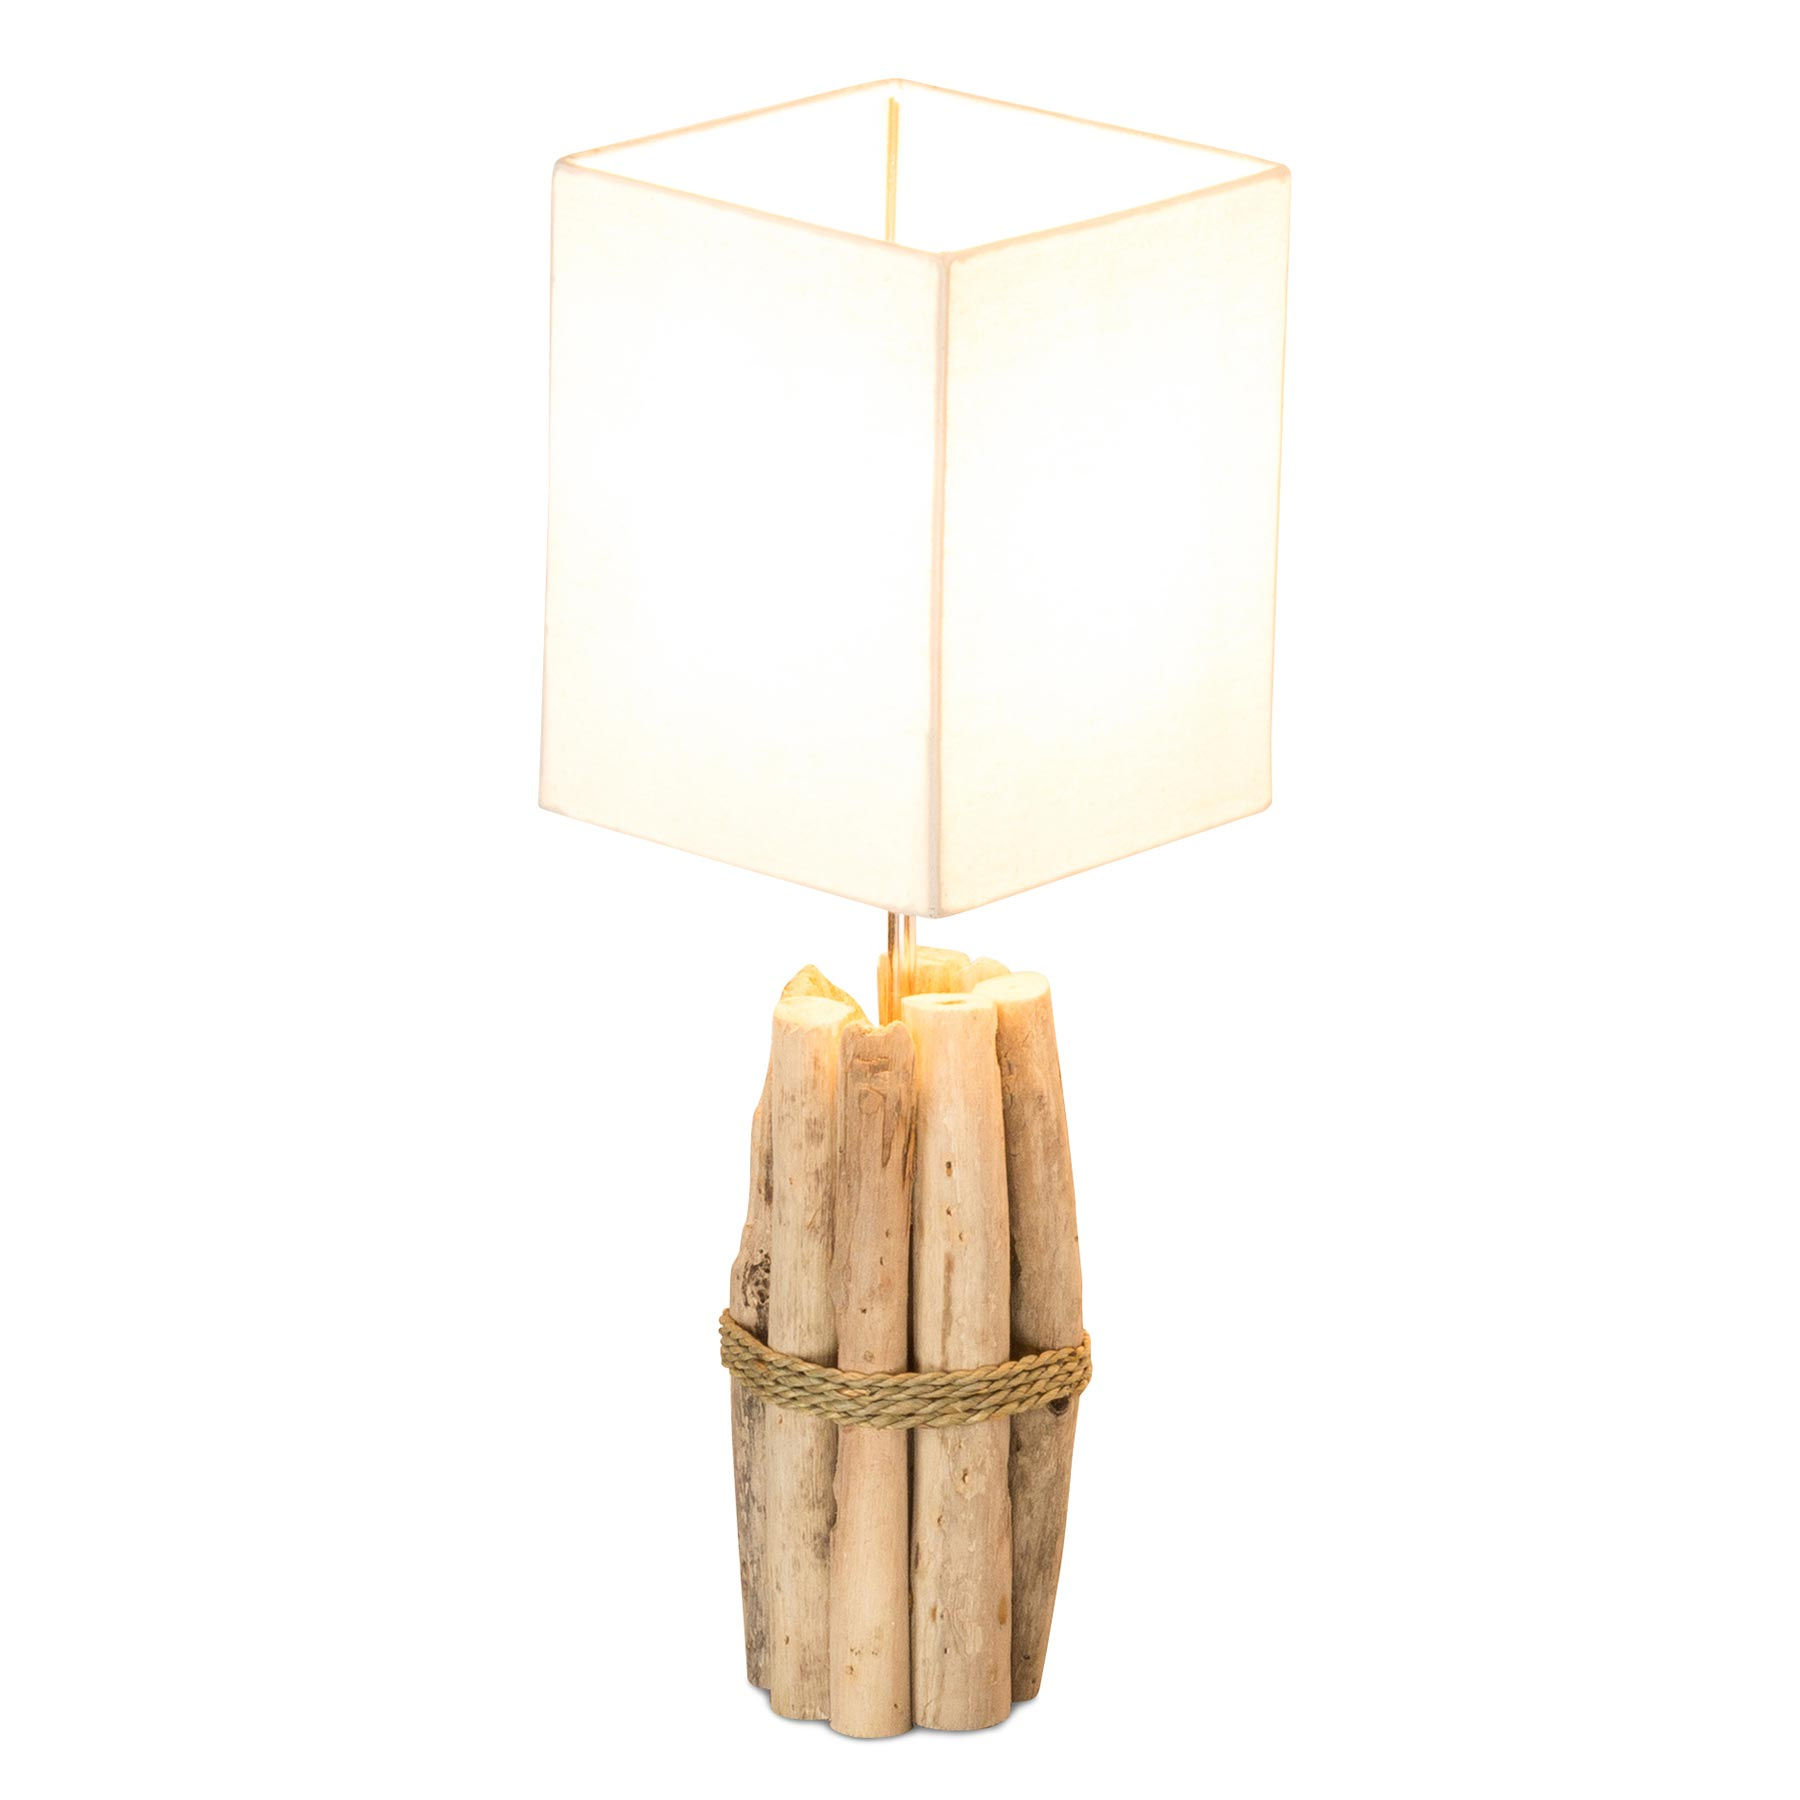 Tischlampe Mit Holz Tischlampe Holz Temde Tischlampe Holz Messing With